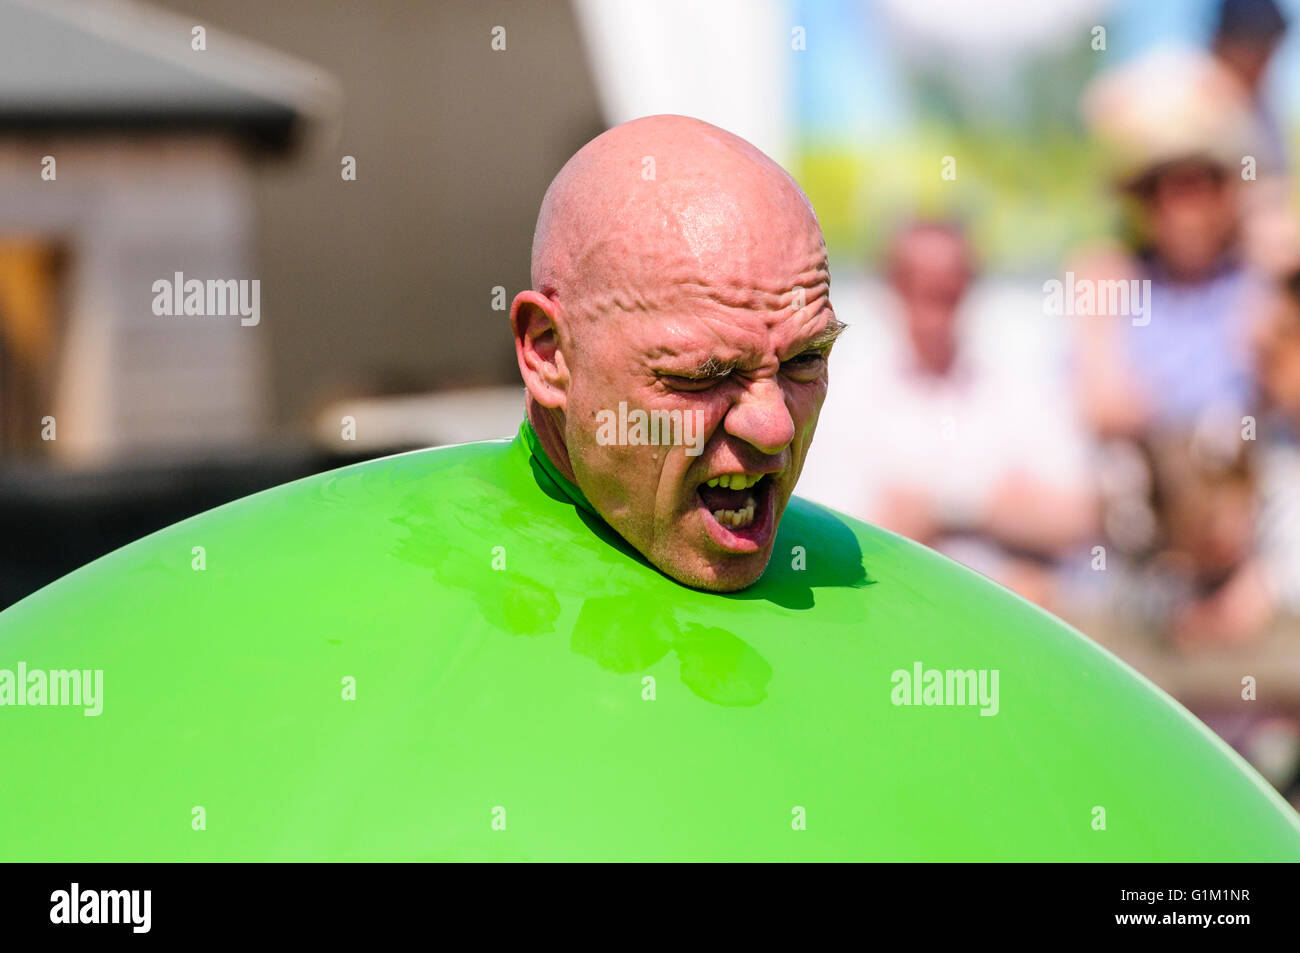 A children's performer pushes his head out of a large green inflatable balloon. - Stock Image